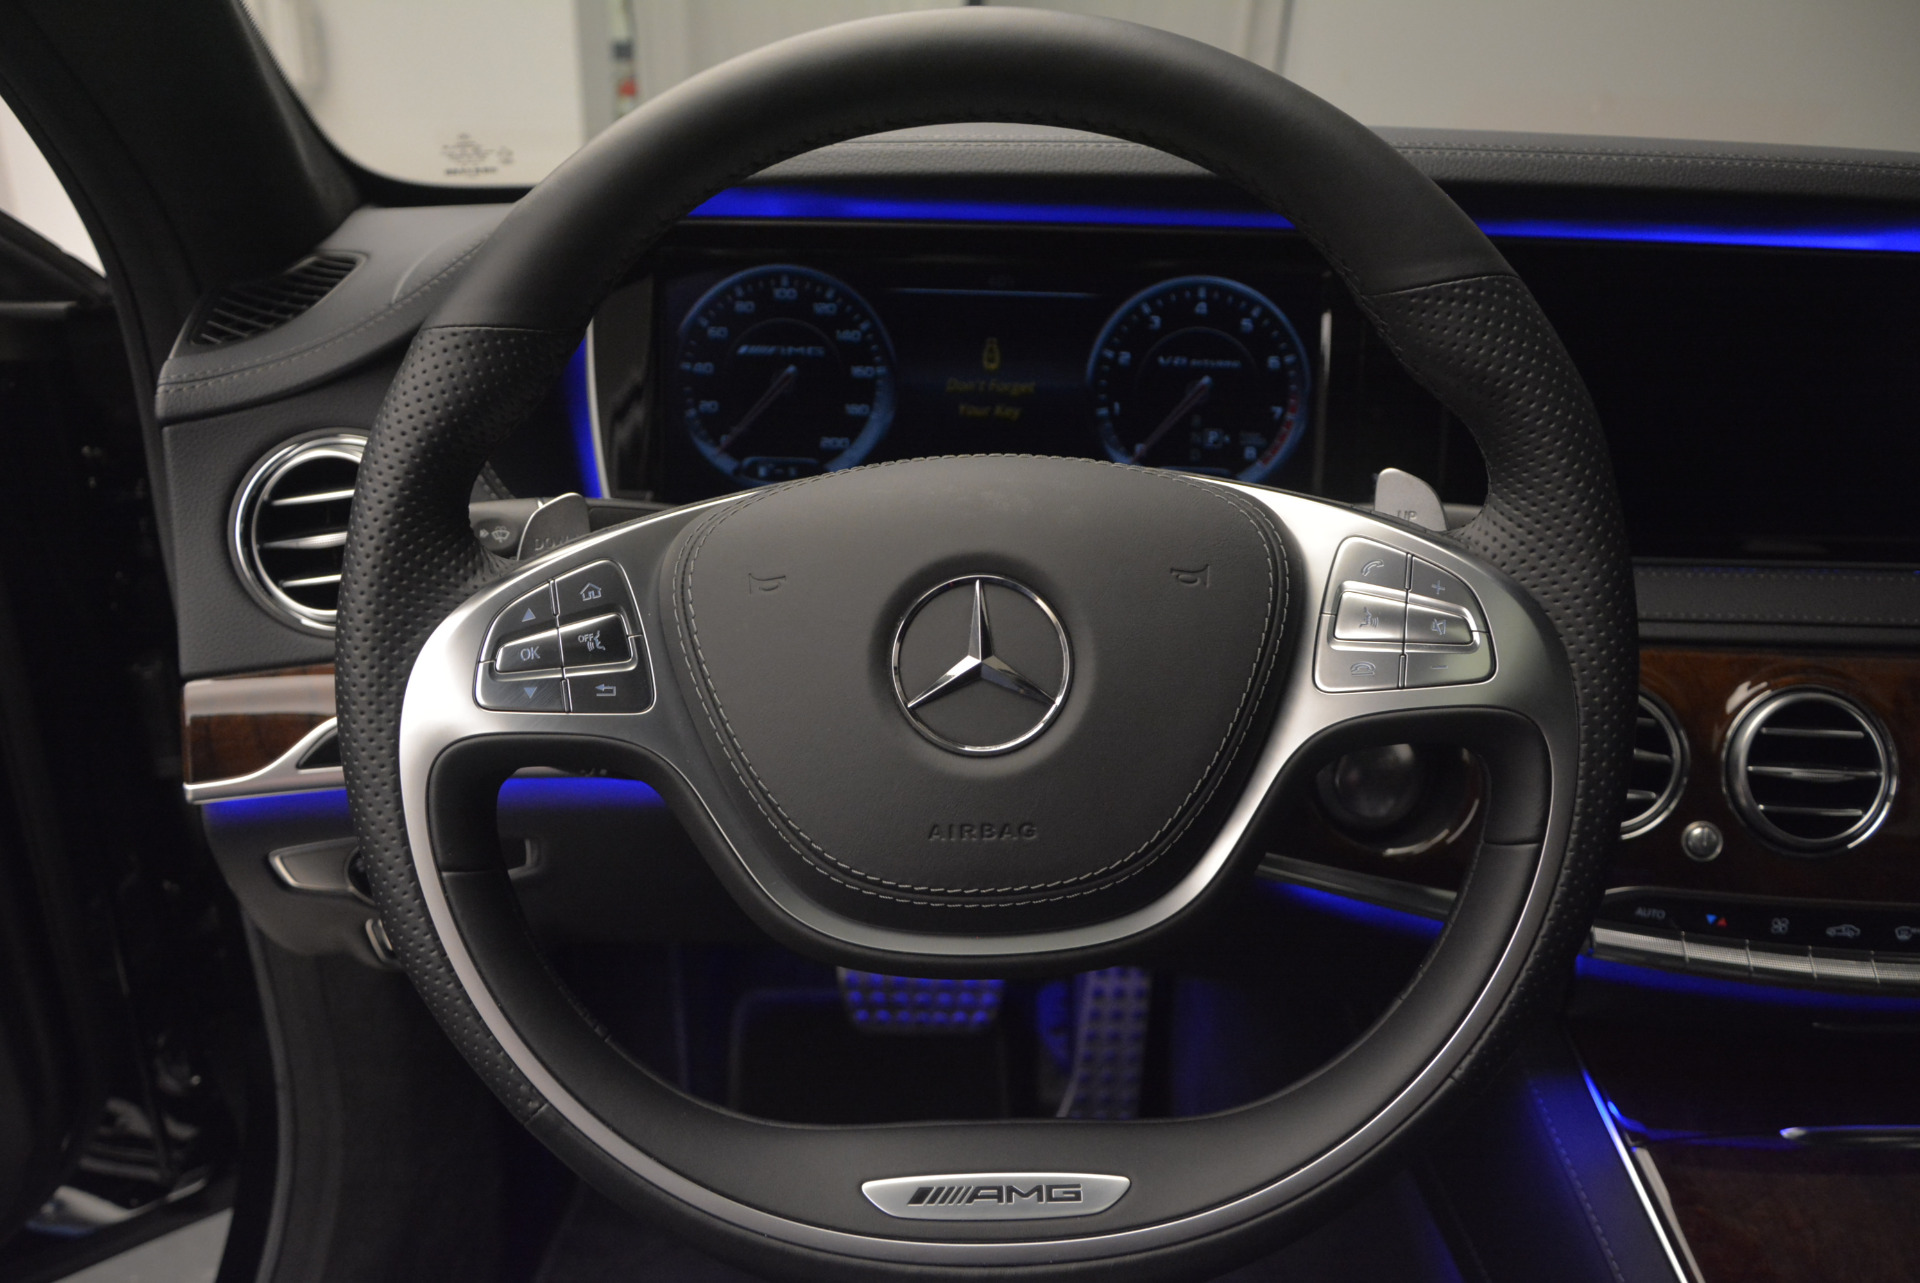 Used 2014 Mercedes Benz S-Class S 63 AMG For Sale In Greenwich, CT 912_p35